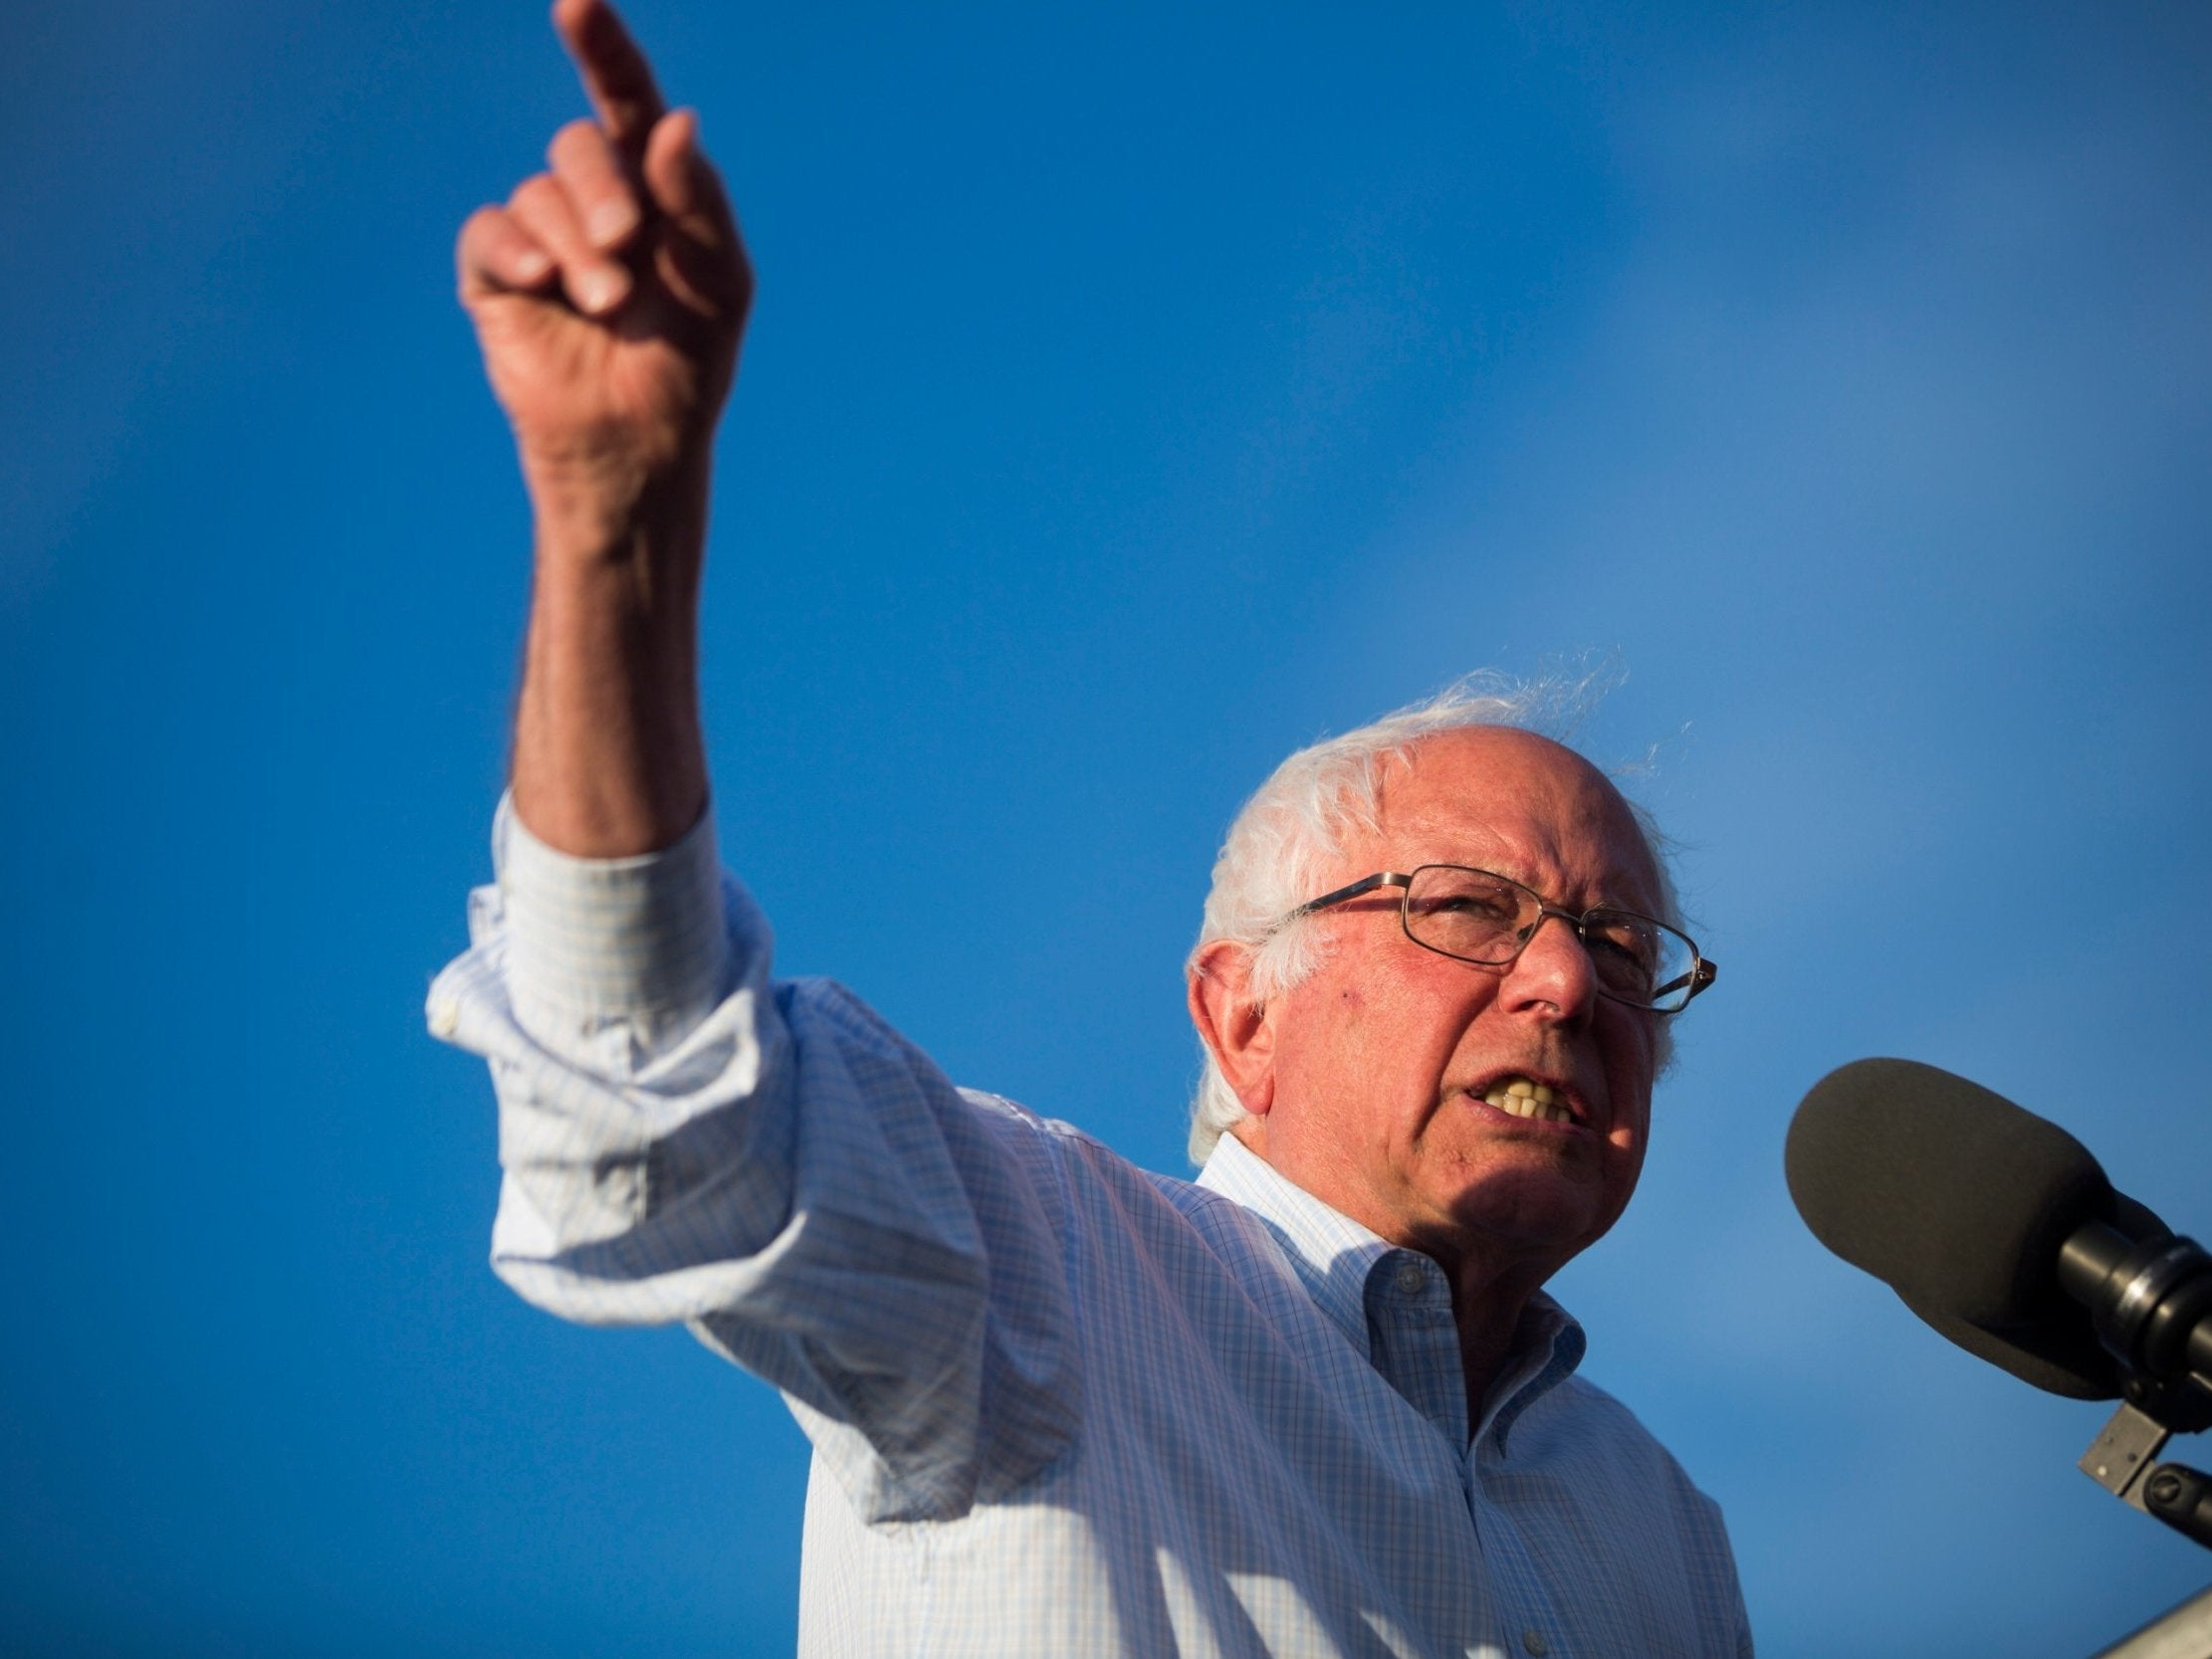 Bernie Sanders 2020: Democrat raises more than $1m in first few hours after entering race